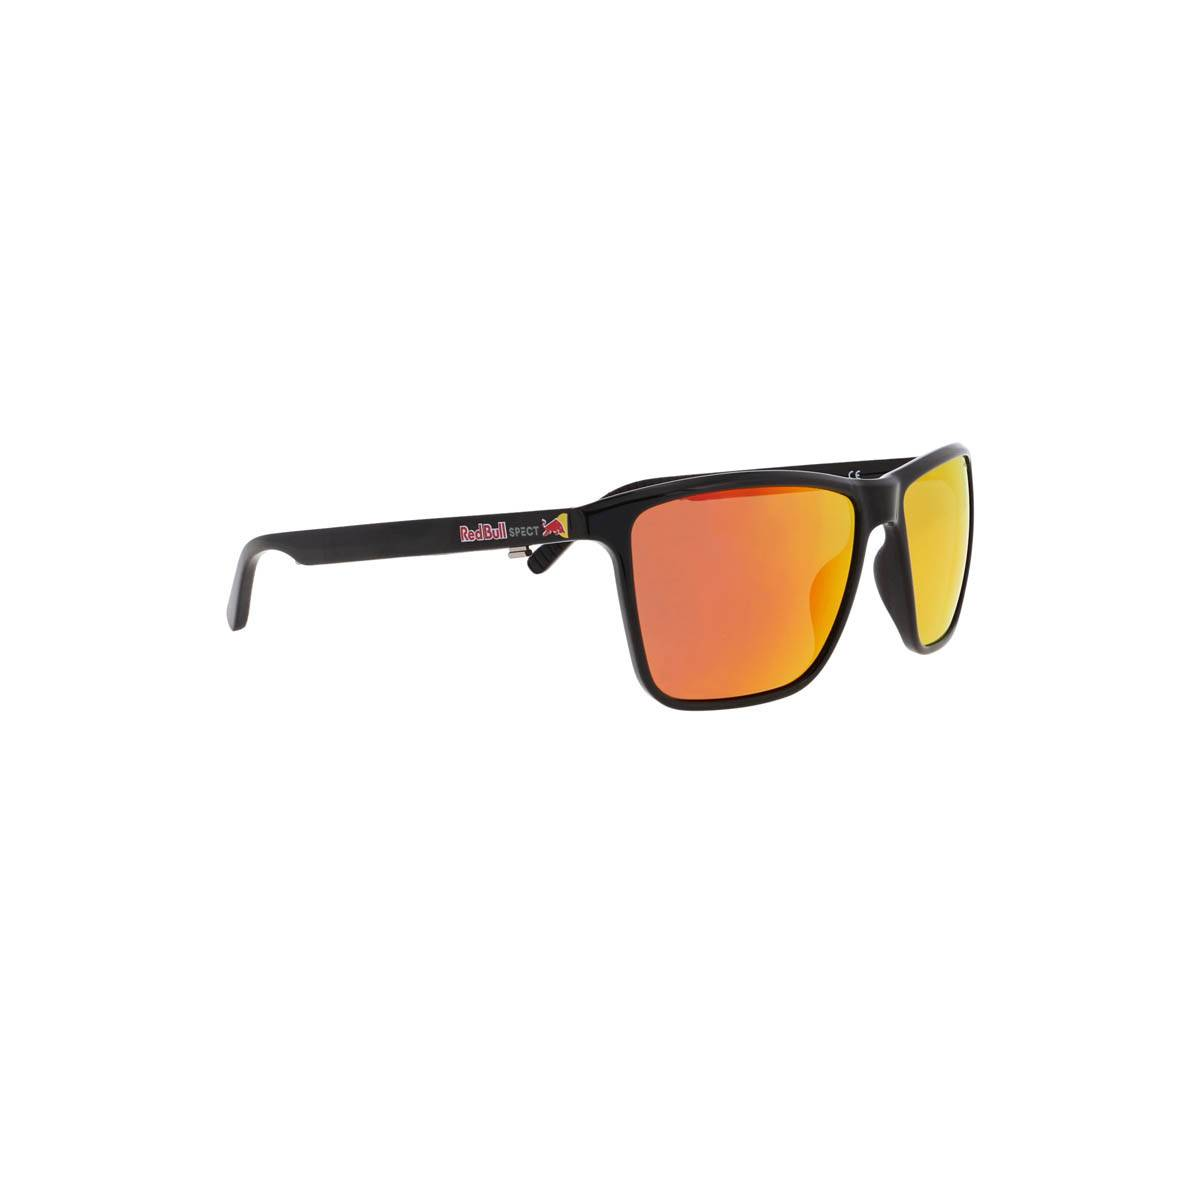 Bull BLADE Occhiali da sole Black Brown